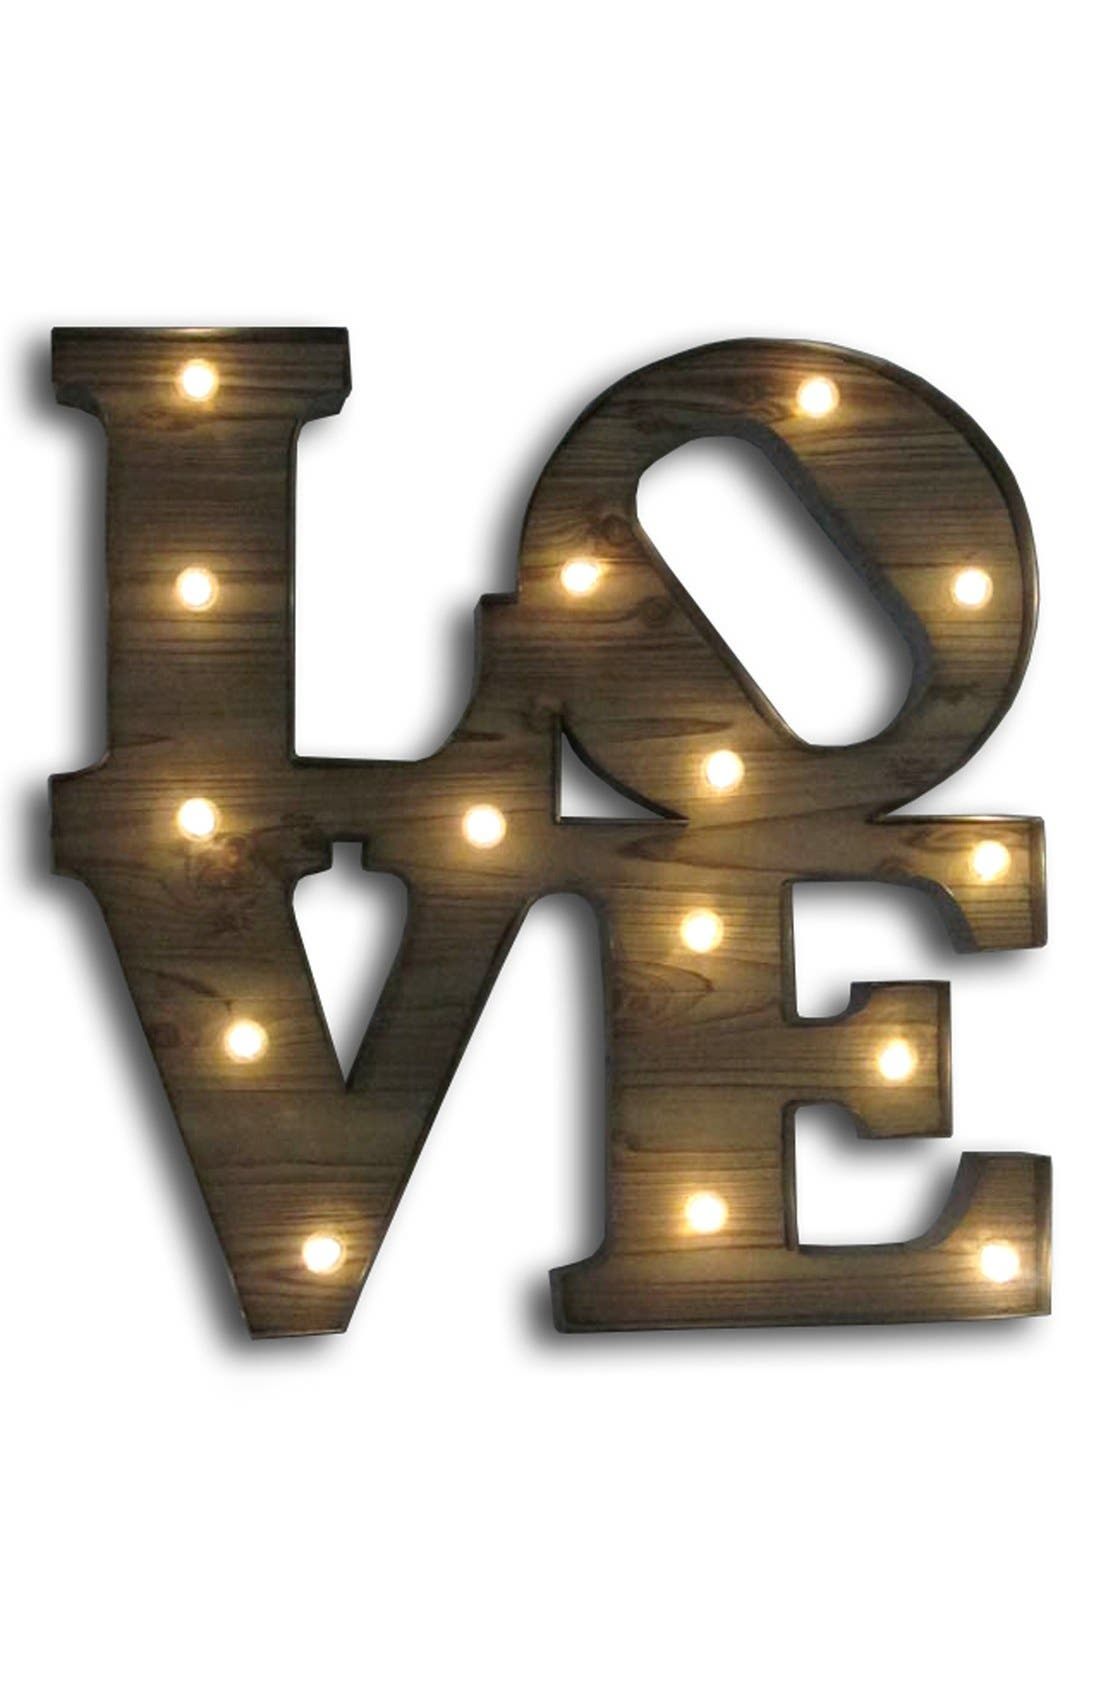 Main Image - Crystal Art Gallery 'Love' Marquee Light Wooden Sign